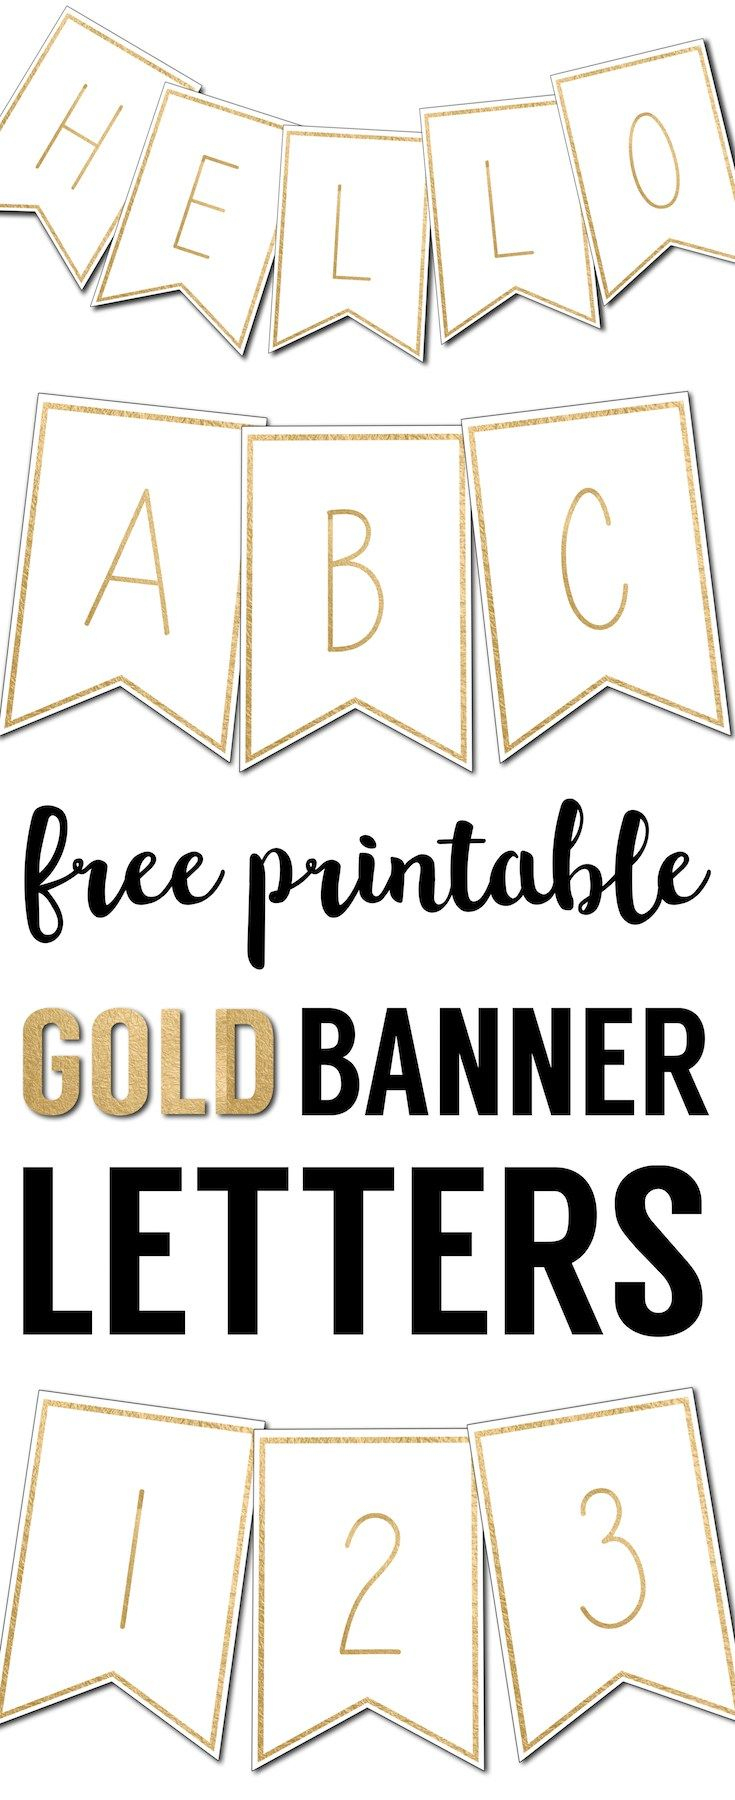 Free Printable Banner Letters Templates   The Wedding Stuff - Free Printable Wedding Banner Letters